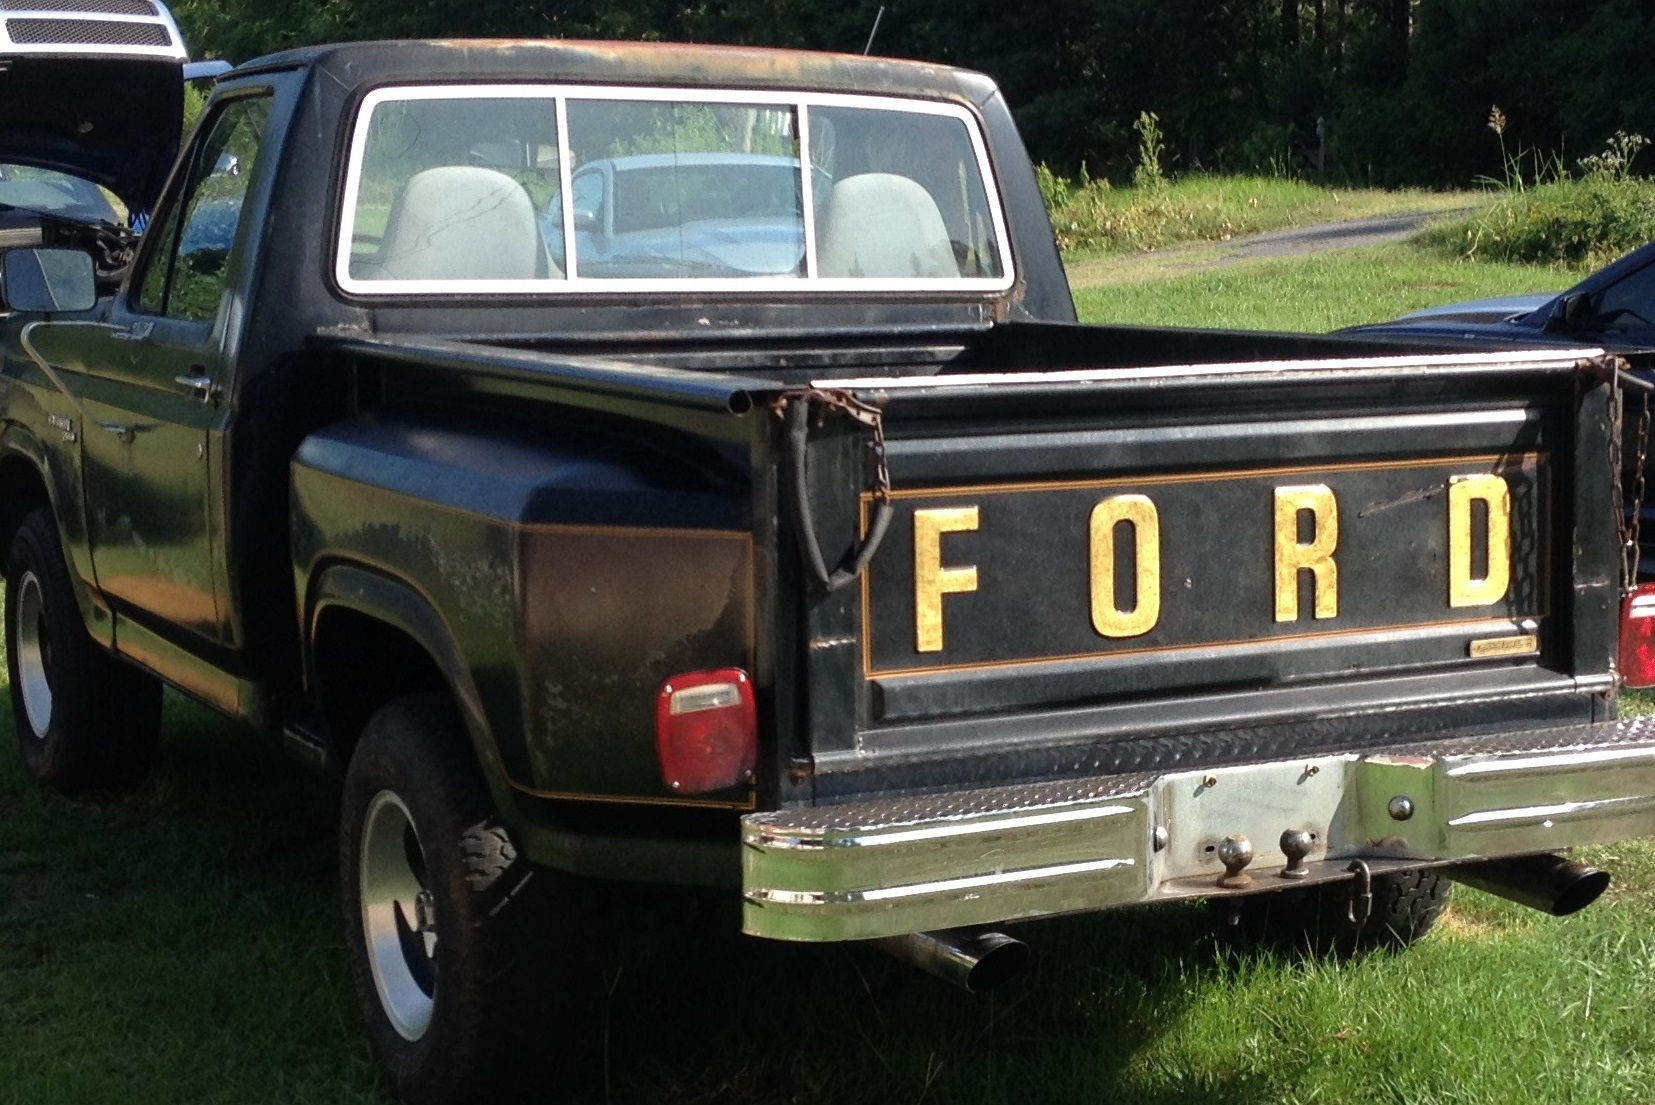 39 81 f100 free wheeling edition special edition badge ford truck enthusiasts forums. Black Bedroom Furniture Sets. Home Design Ideas